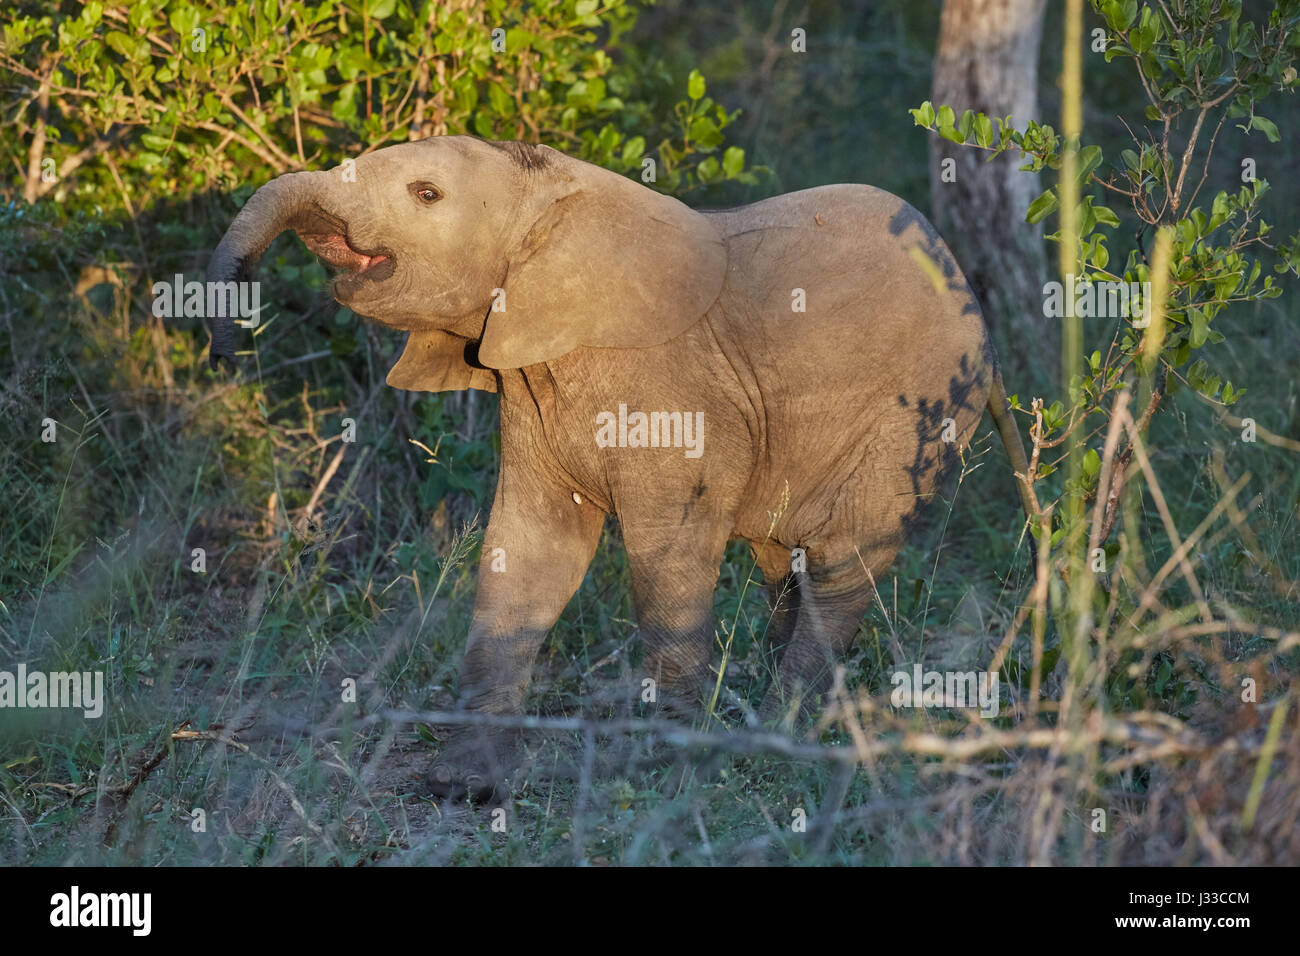 Young elephant in Krueger National park, South Africa, Africa - Stock Image